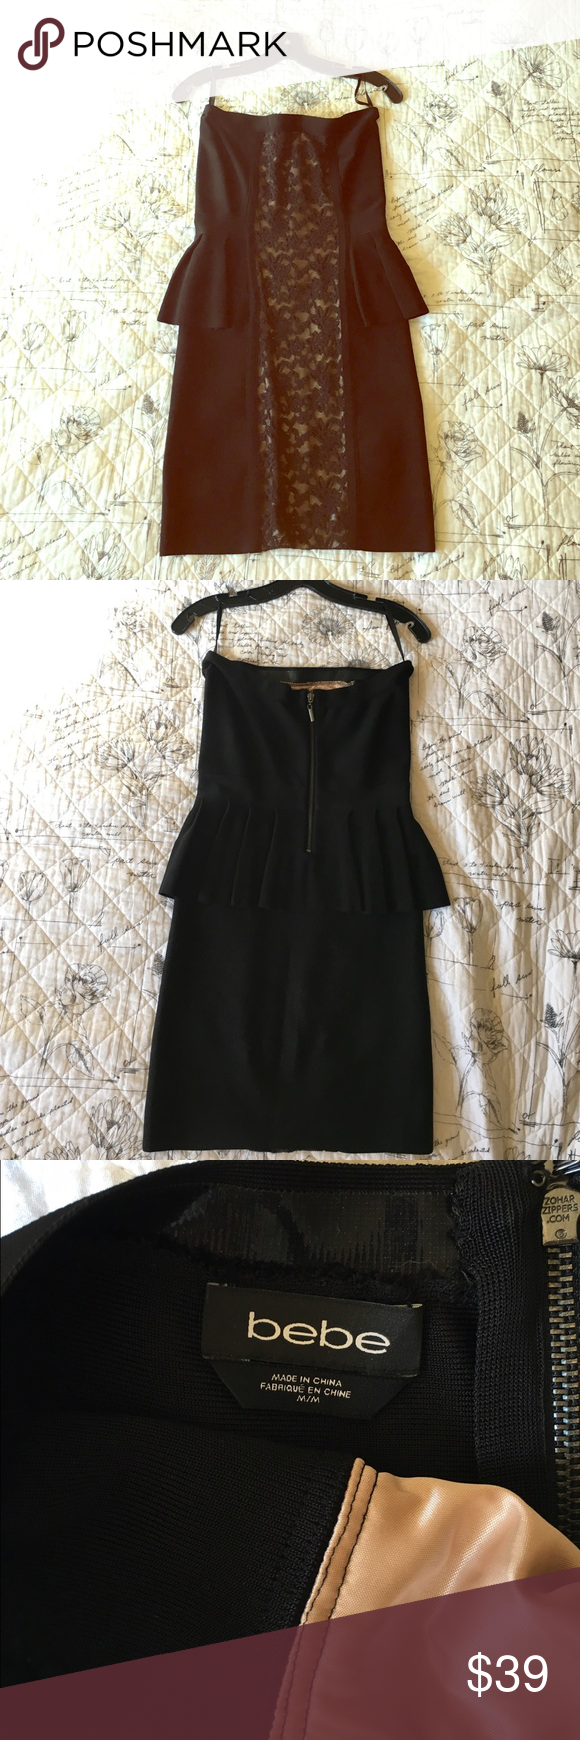 Black strapless cocktail dress with lace detail. Beautiful knee length black dress with ruffle and lace detail. Form fitting and very flattering. bebe Dresses Strapless